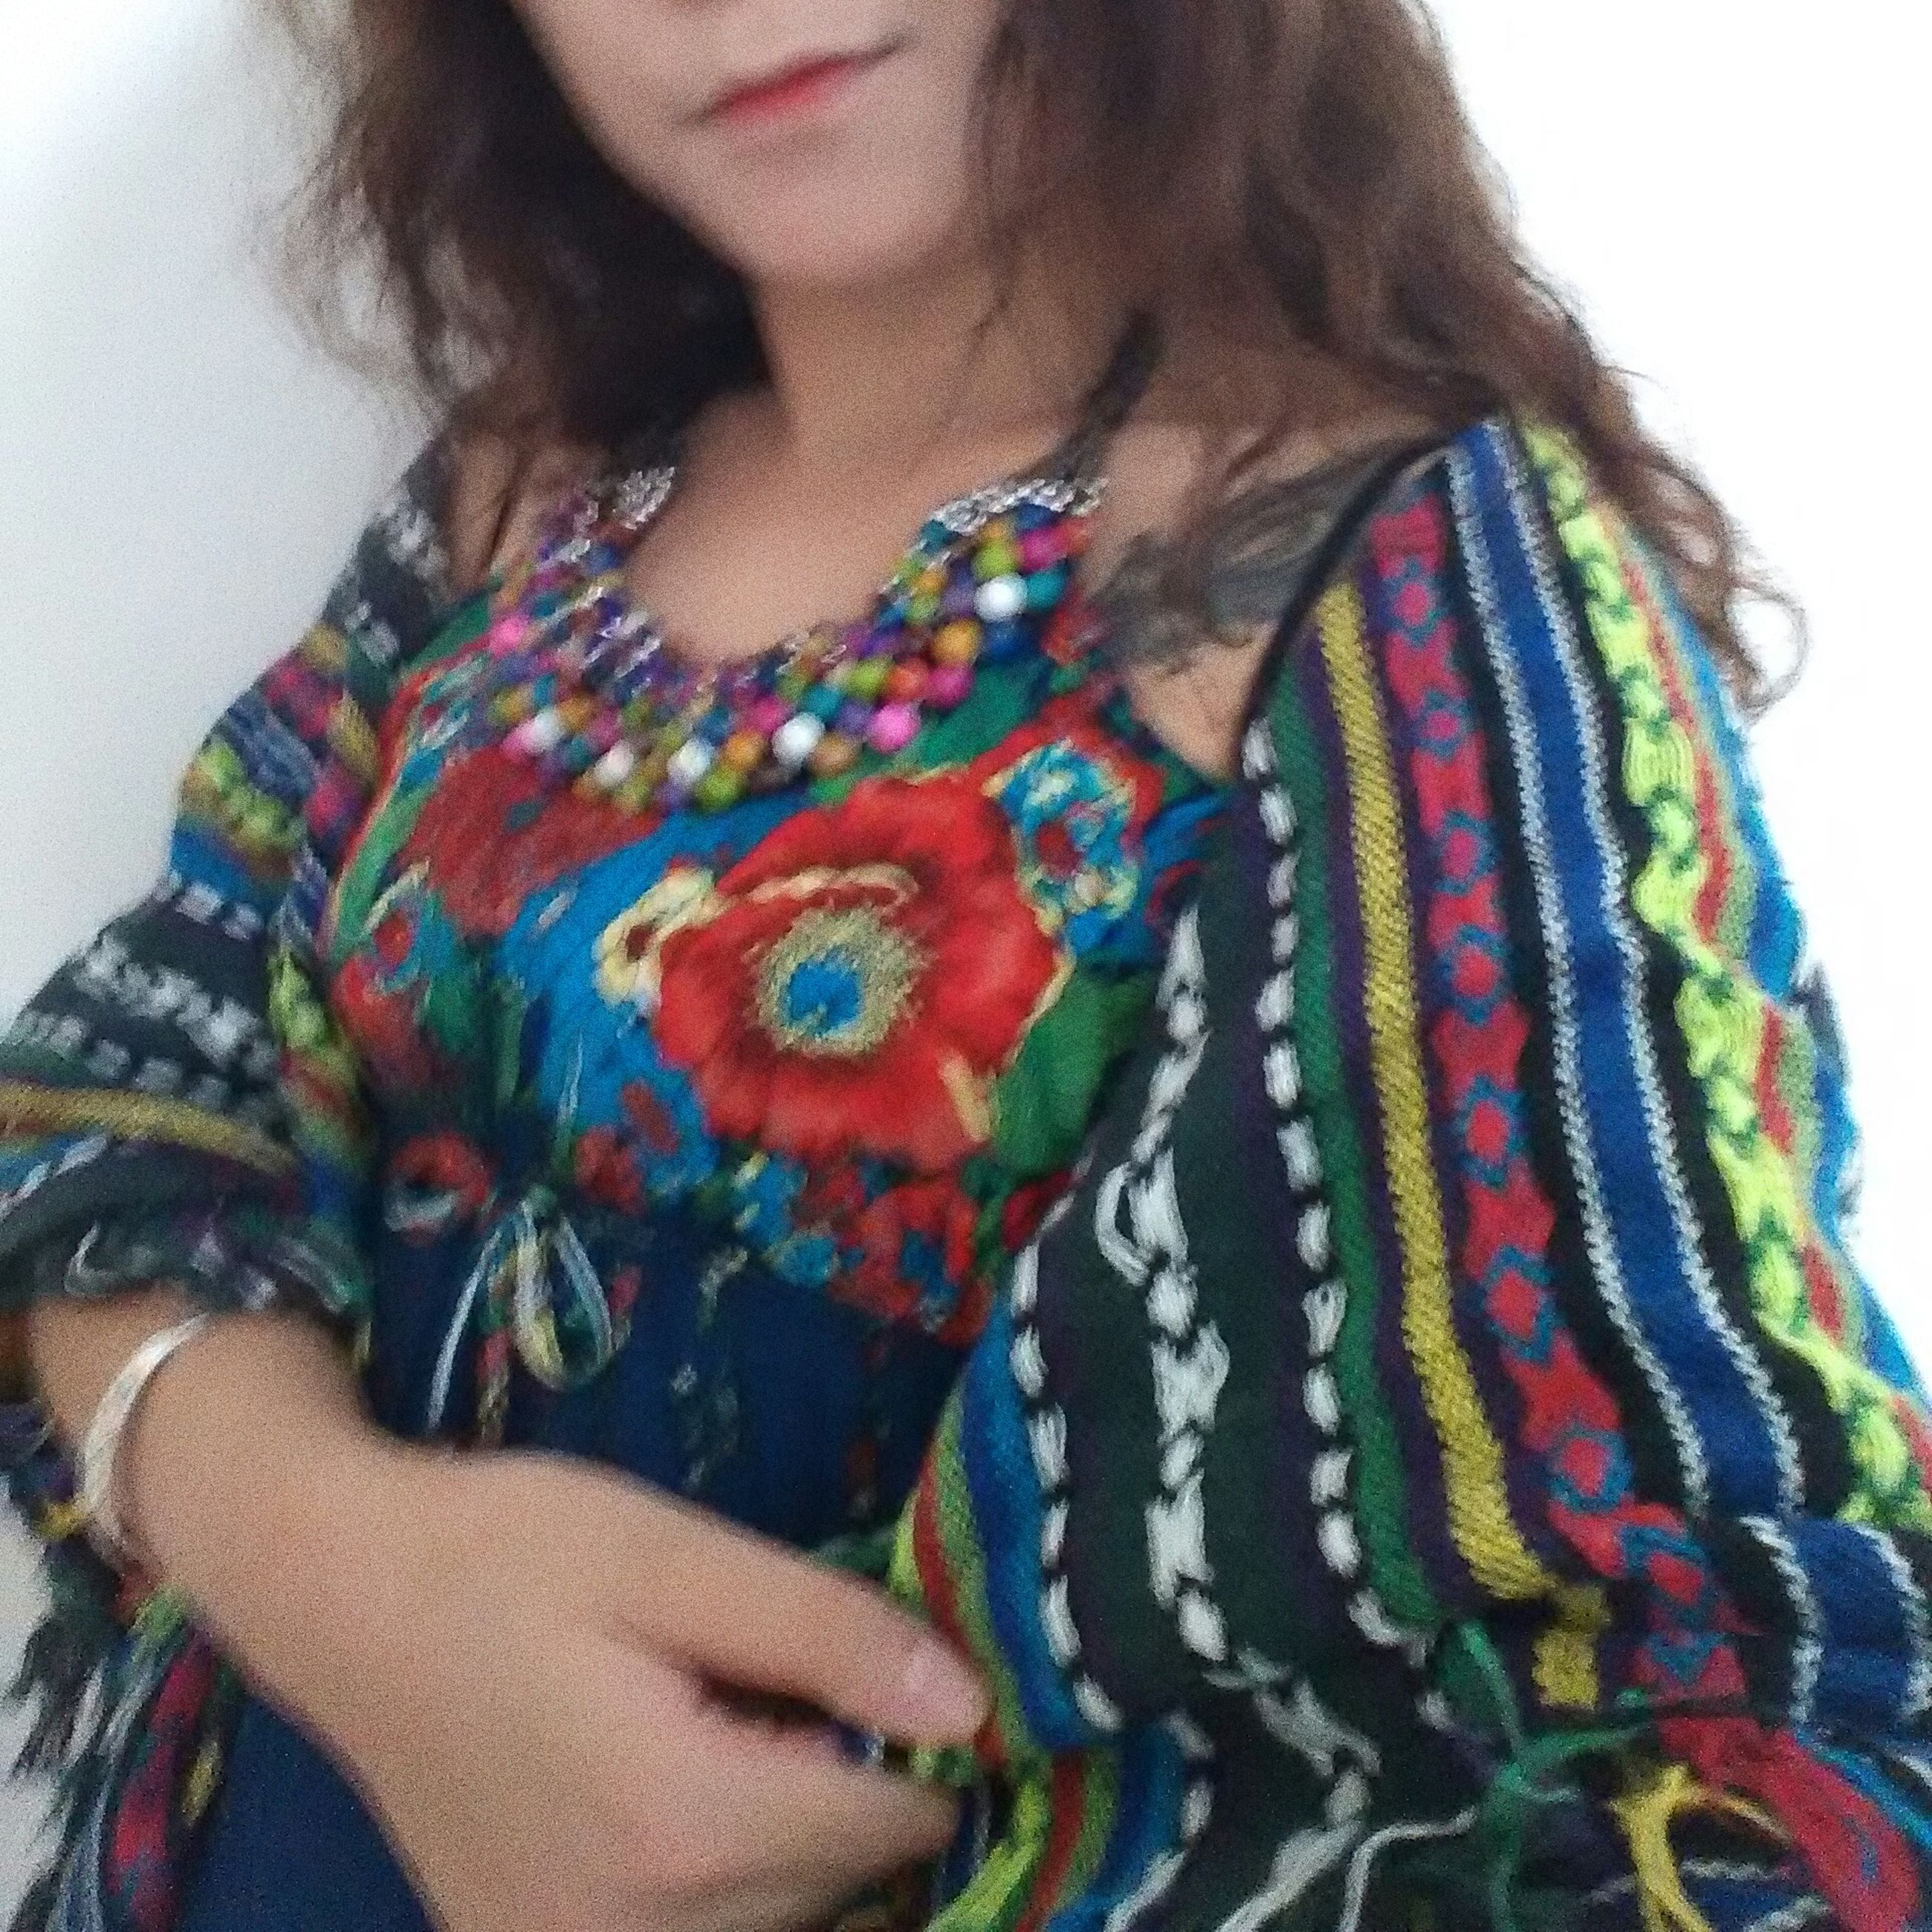 multi colored, lifestyles, leisure activity, indoors, front view, person, close-up, casual clothing, looking at camera, portrait, young women, young adult, colorful, midsection, childhood, fashion, headshot